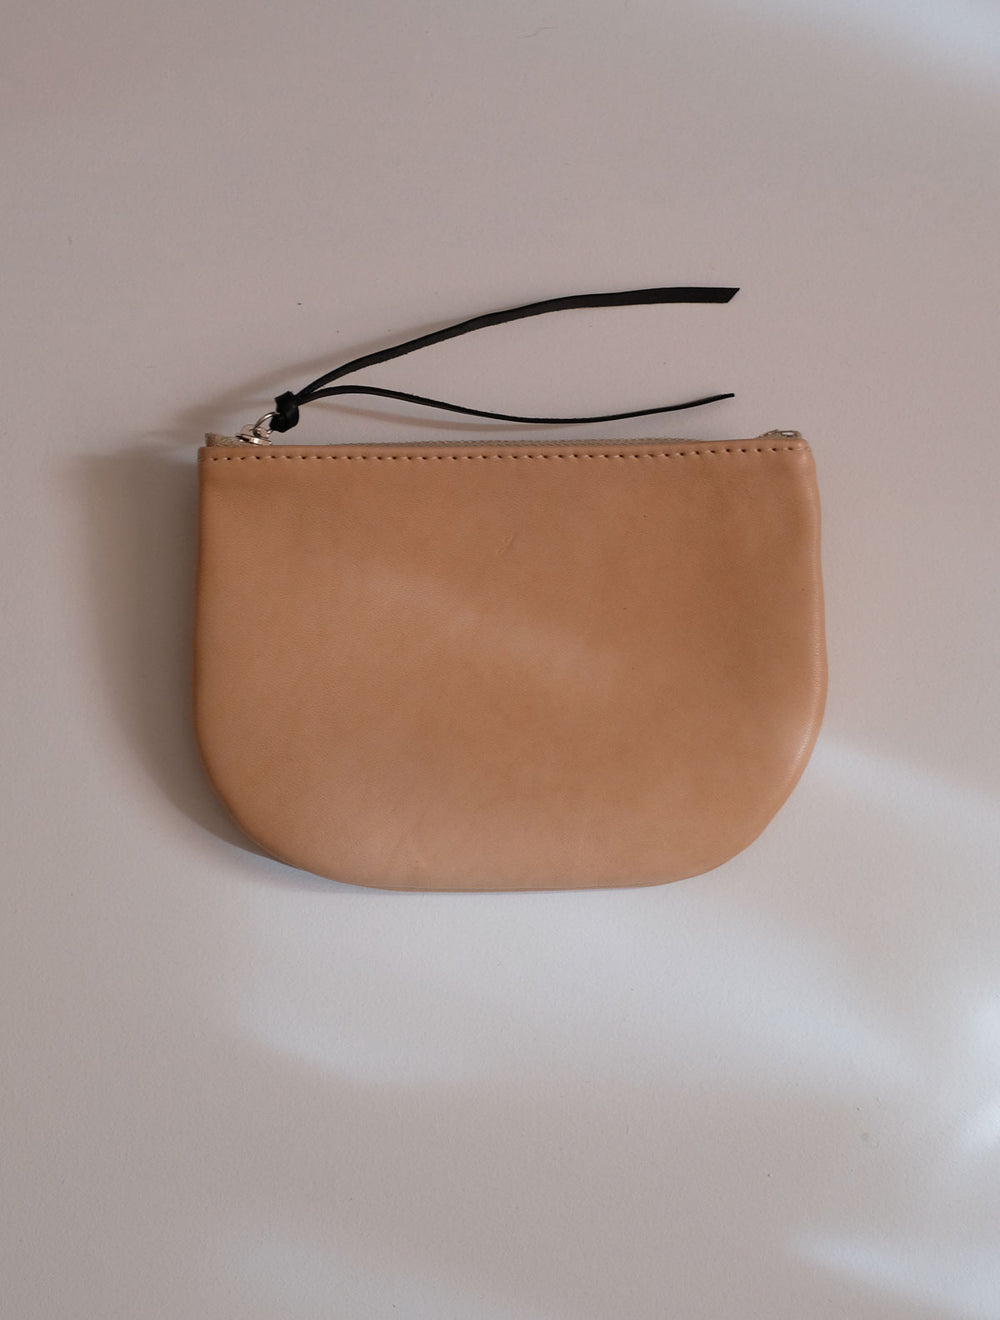 STAN / LEATHER BAG WITH ZIPPER / CALF LEATHER